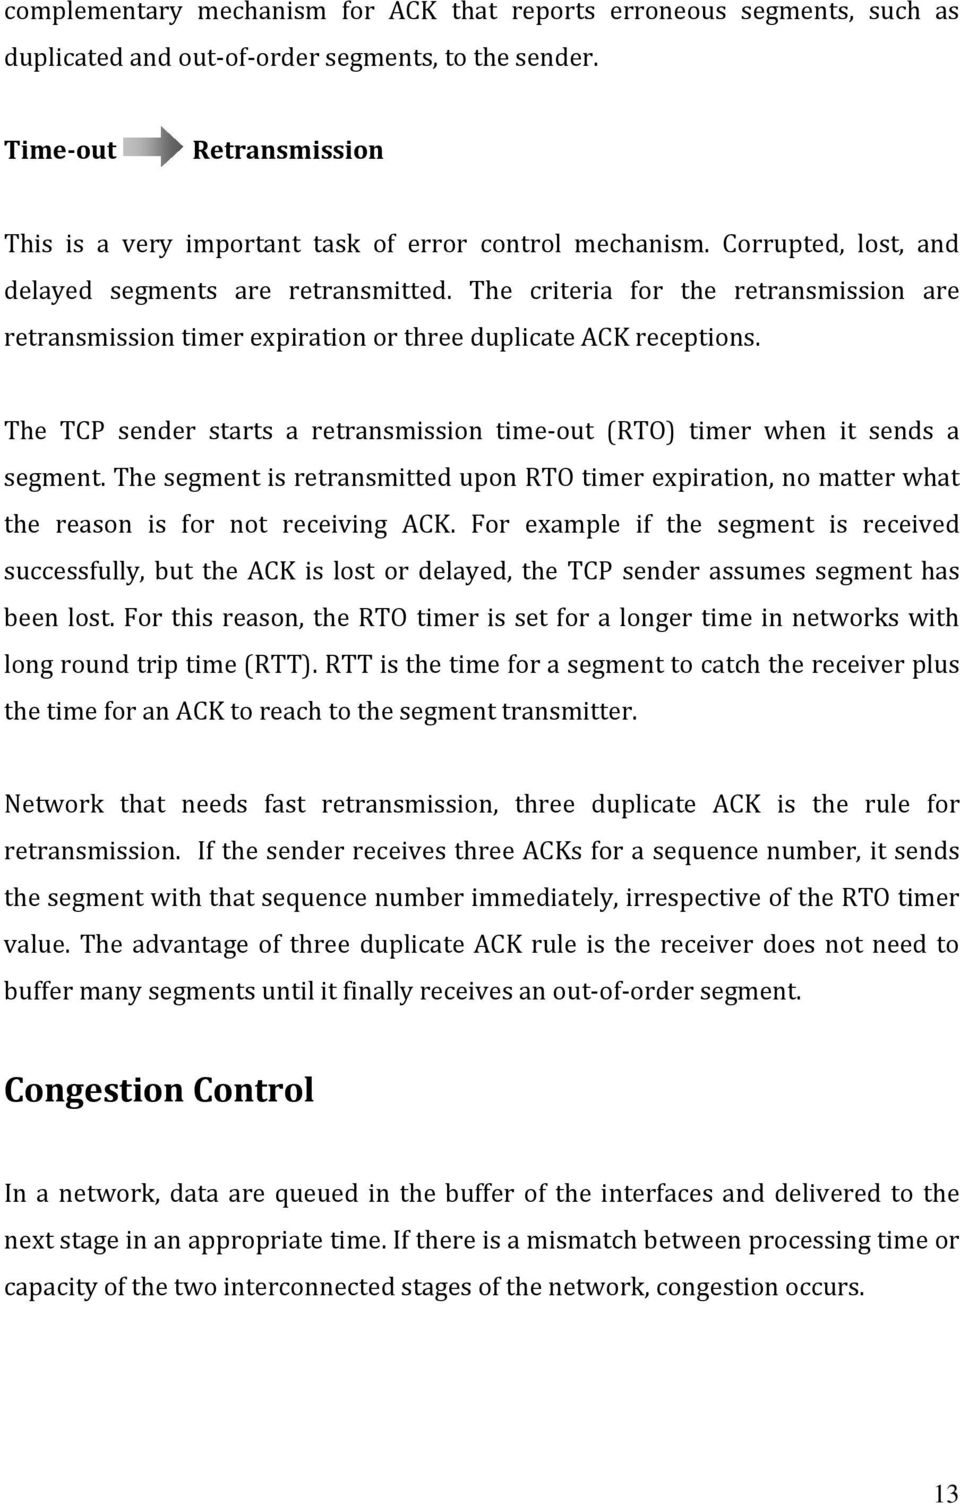 The criteria for the retransmission are retransmission timer expiration or three duplicate ACK receptions. The TCP sender starts a retransmission time out (RTO) timer when it sends a segment.